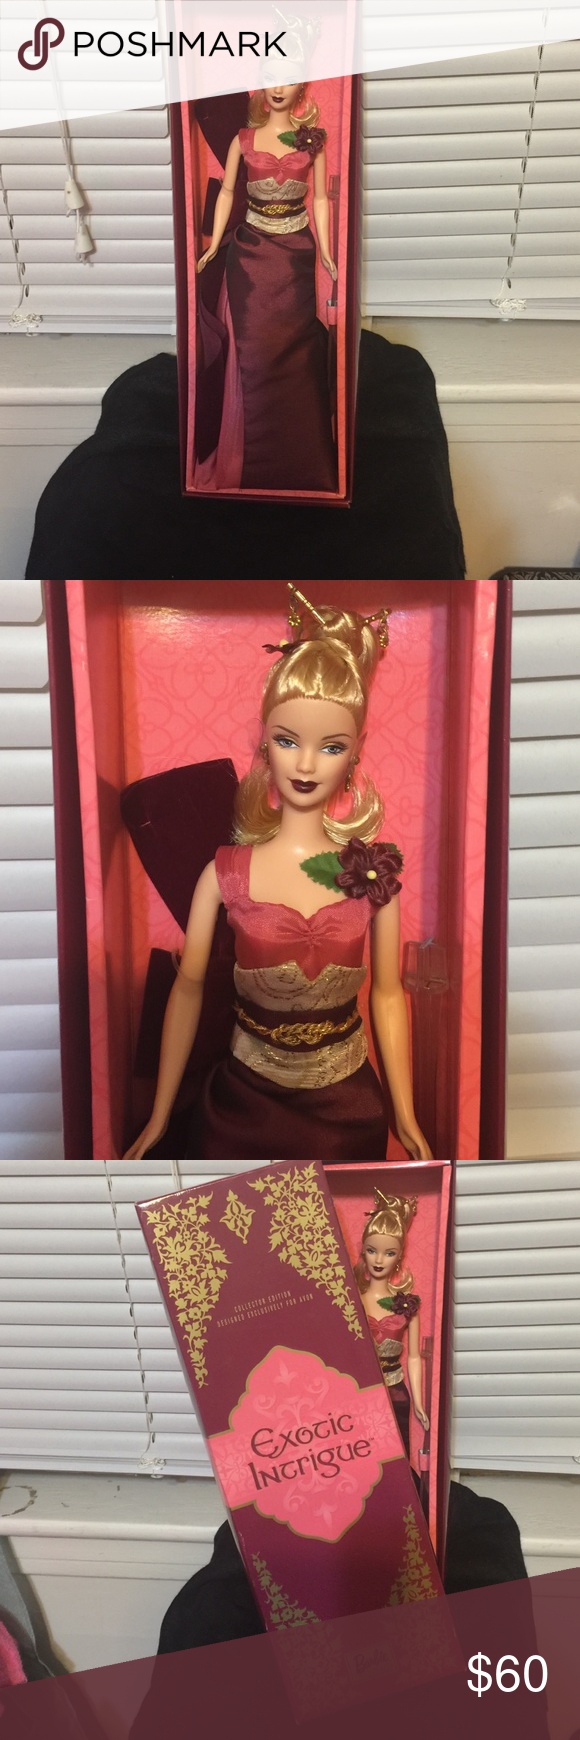 Collectors Item Barbie . Exotic Intrigue Barbie. Other